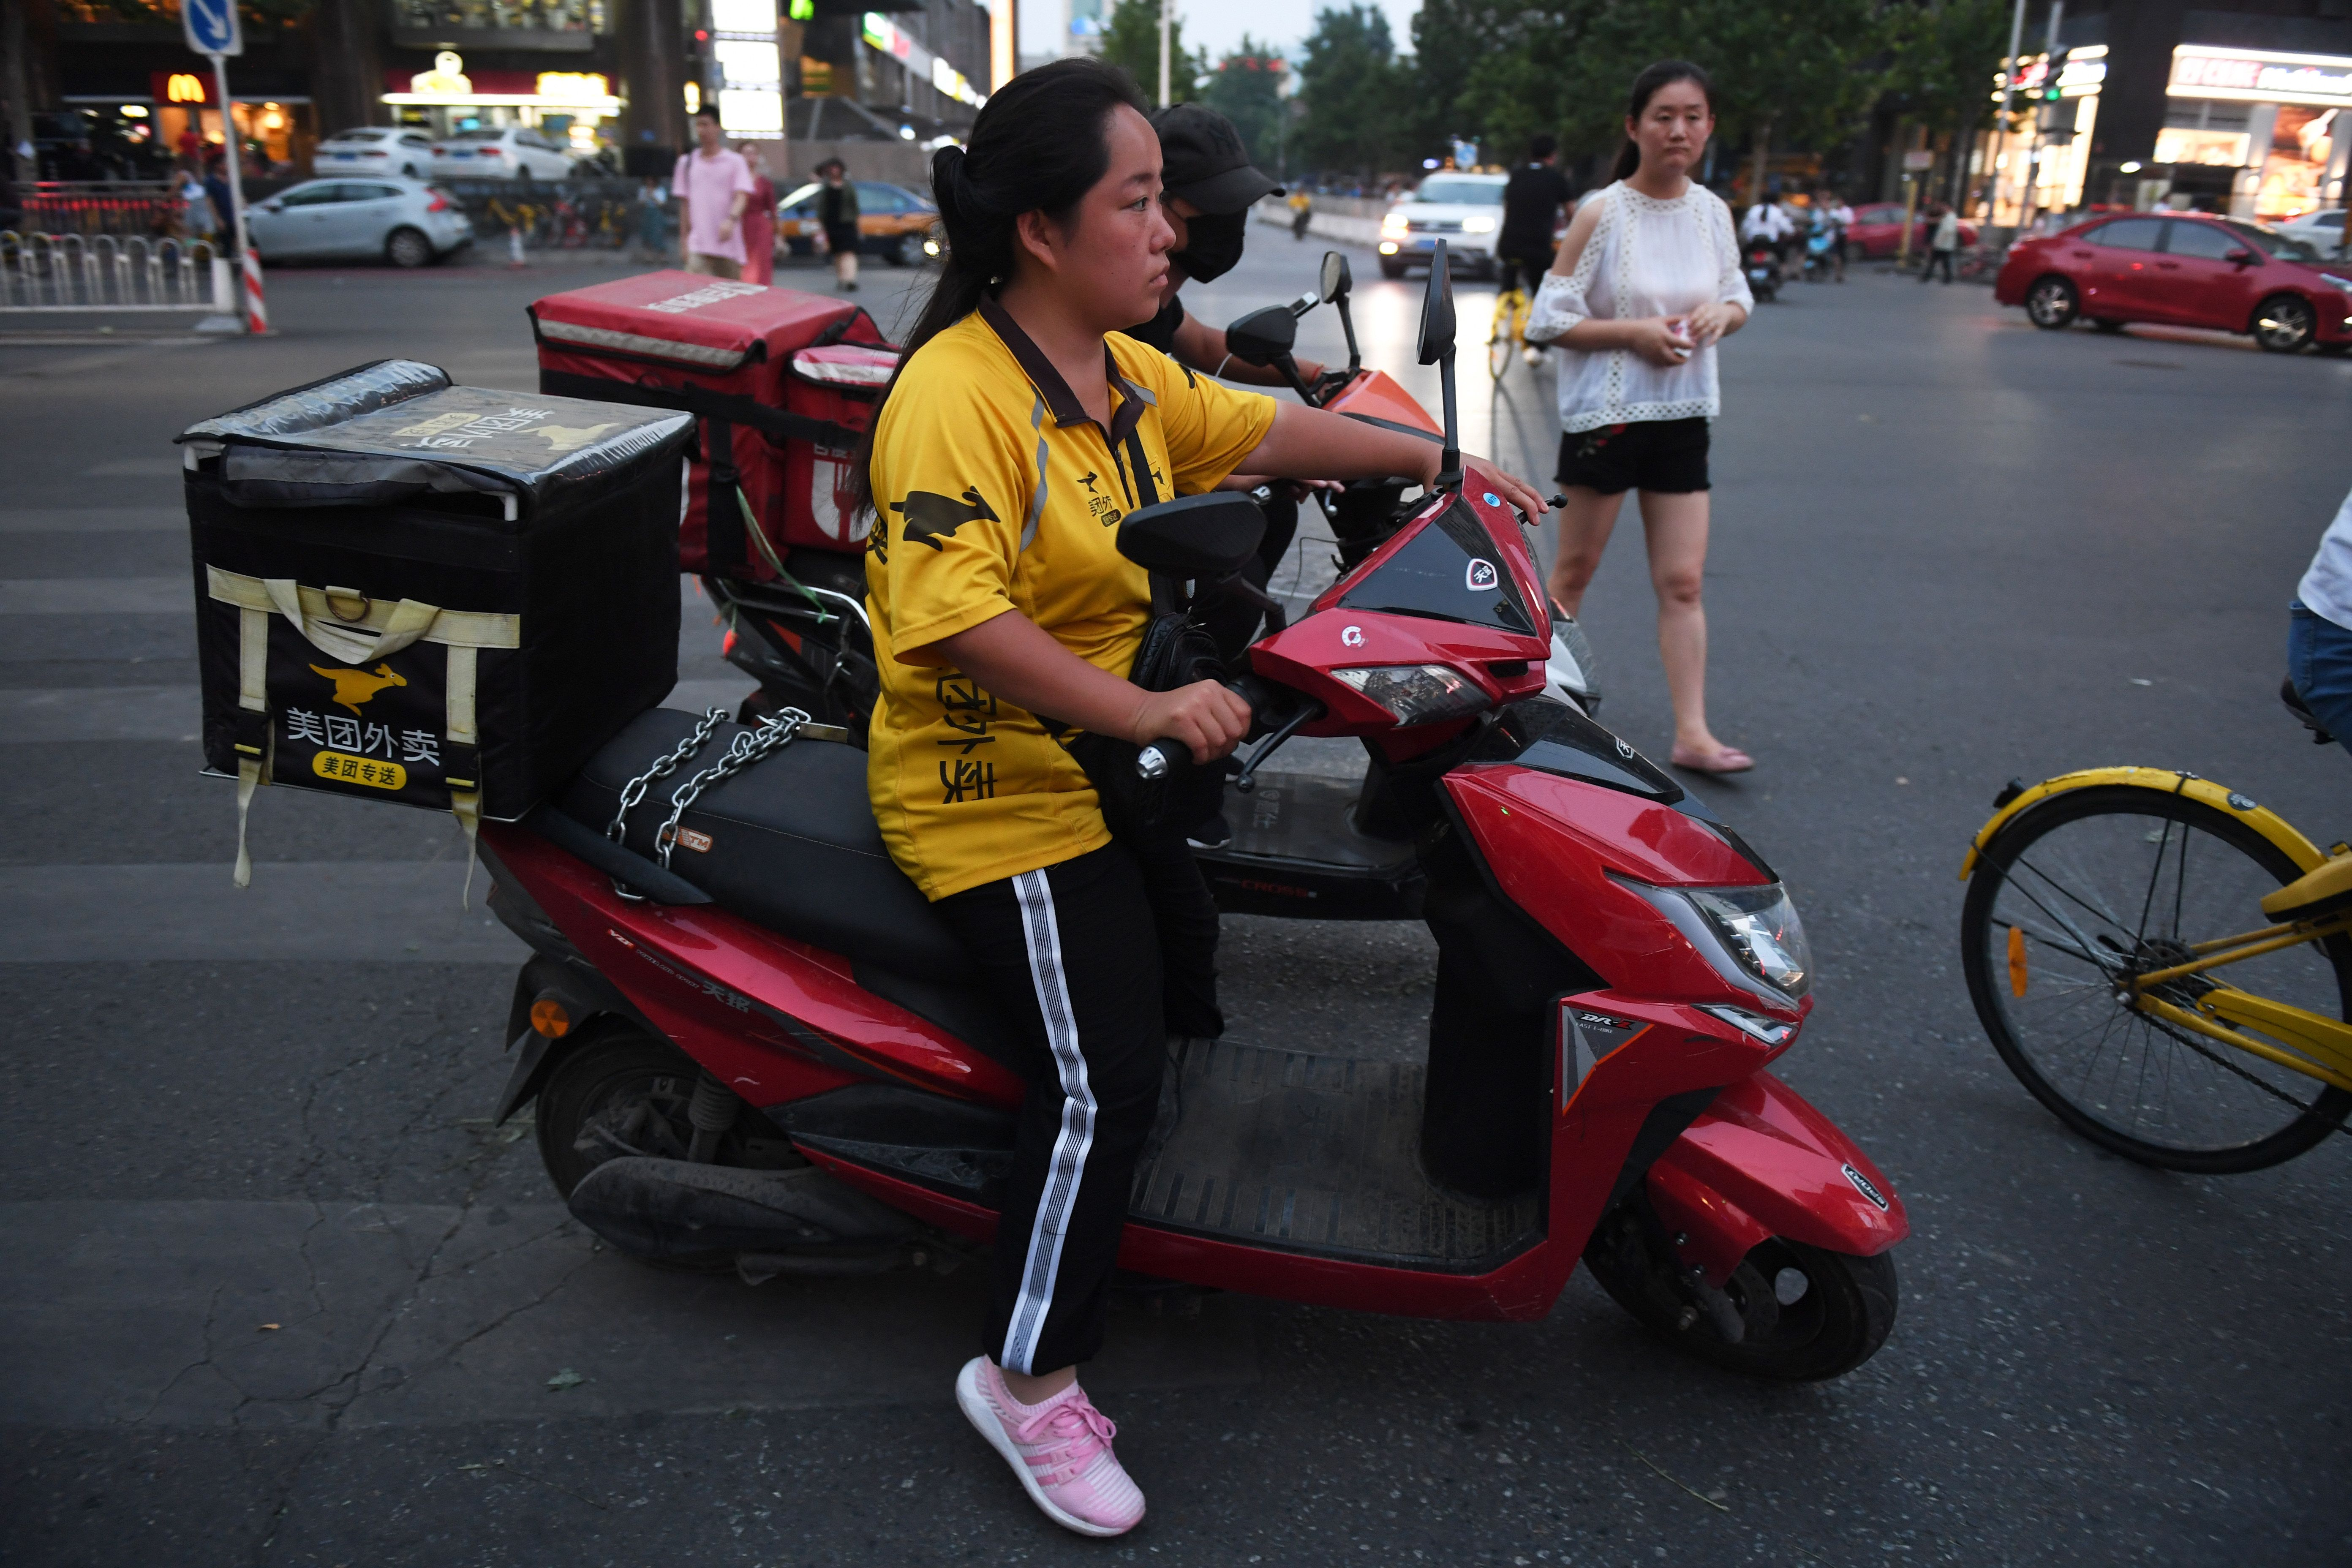 Meituan-Dianping delivery on motorbike